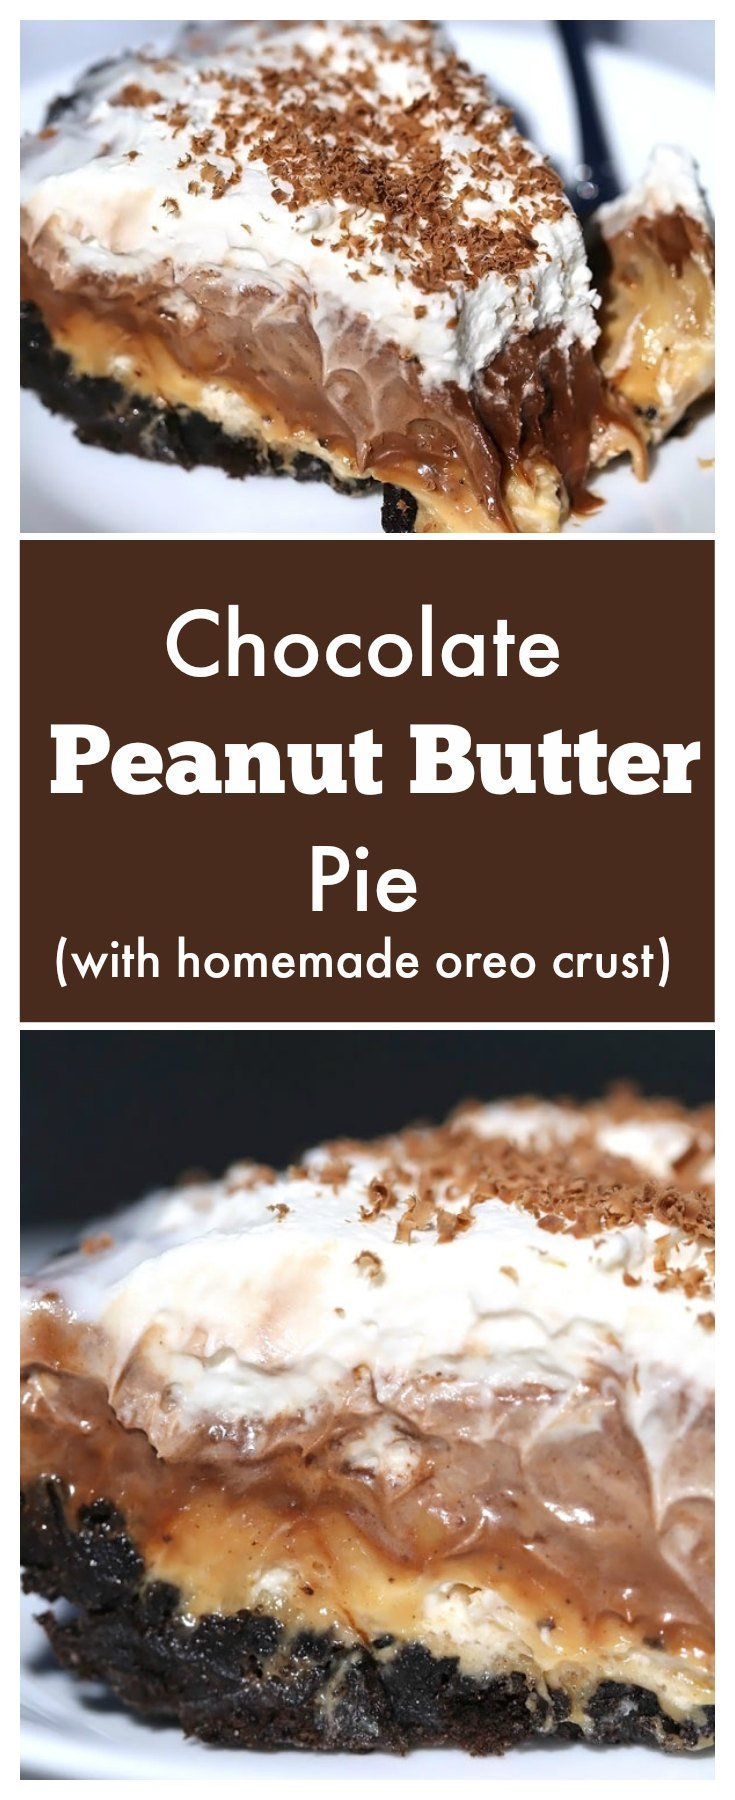 This No Bake chocolate peanut butter pie recipe with homemade oreo crust has earned a spot on our favorite dessert recipes list.  It is soft, creamy and oh so decadently delicious.